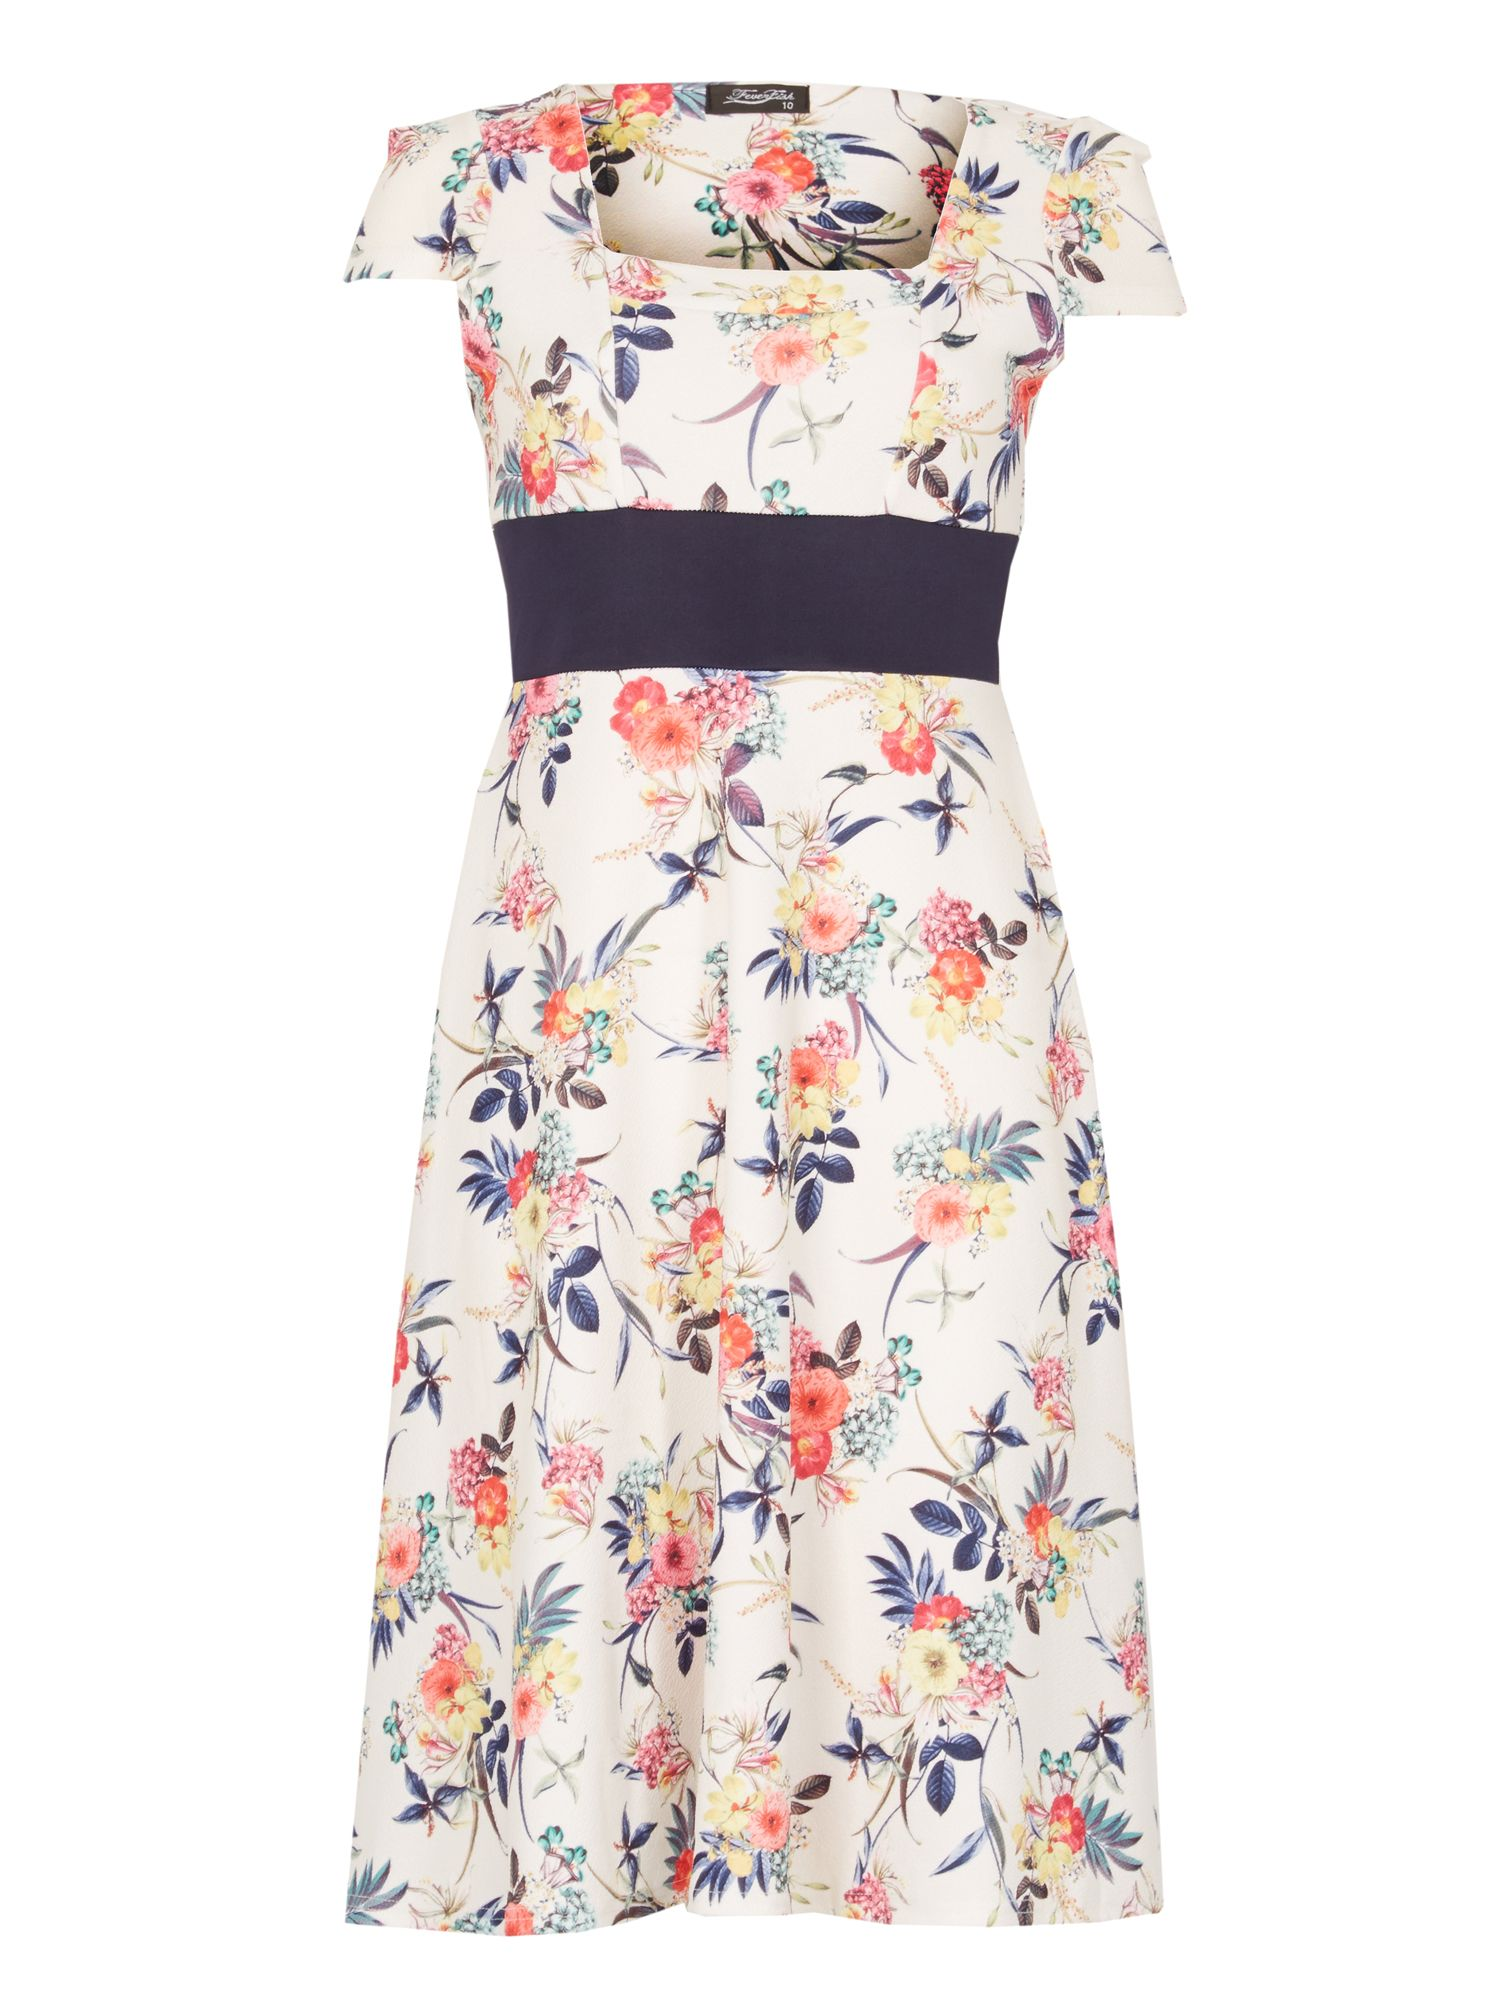 Feverfish Contrast Flower Print Flared Dress, Cream